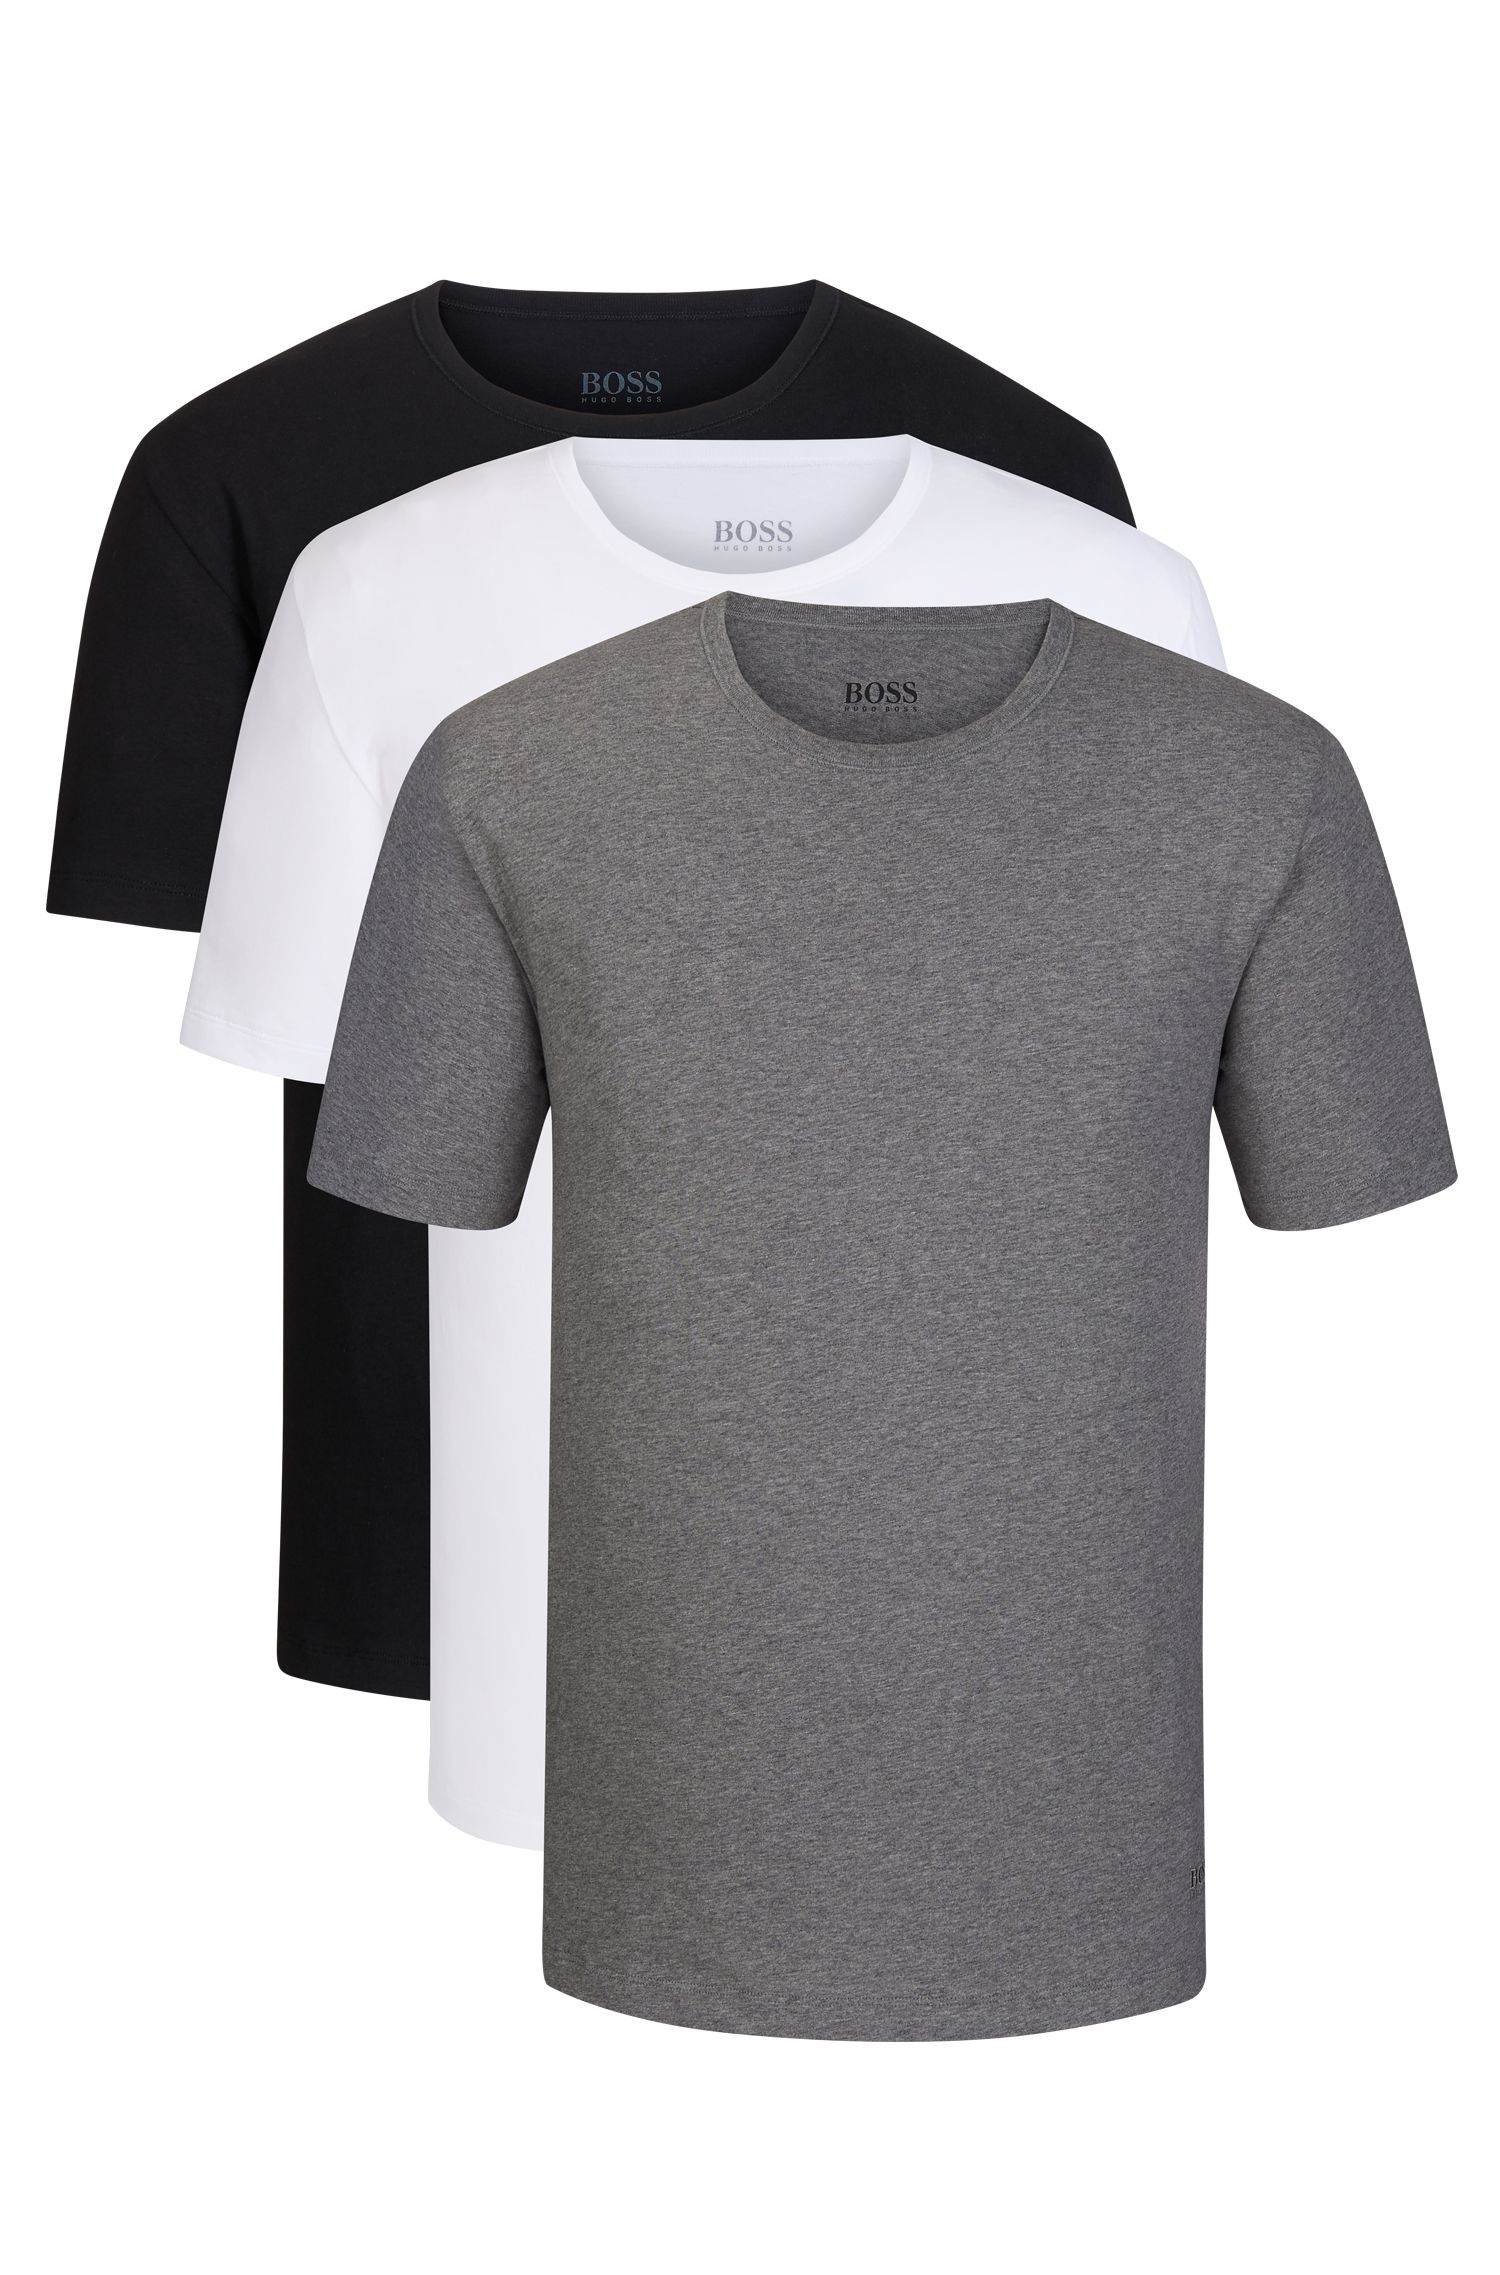 Cotton Jersey T-Shirt, 3-Pack | T-Shirt RN